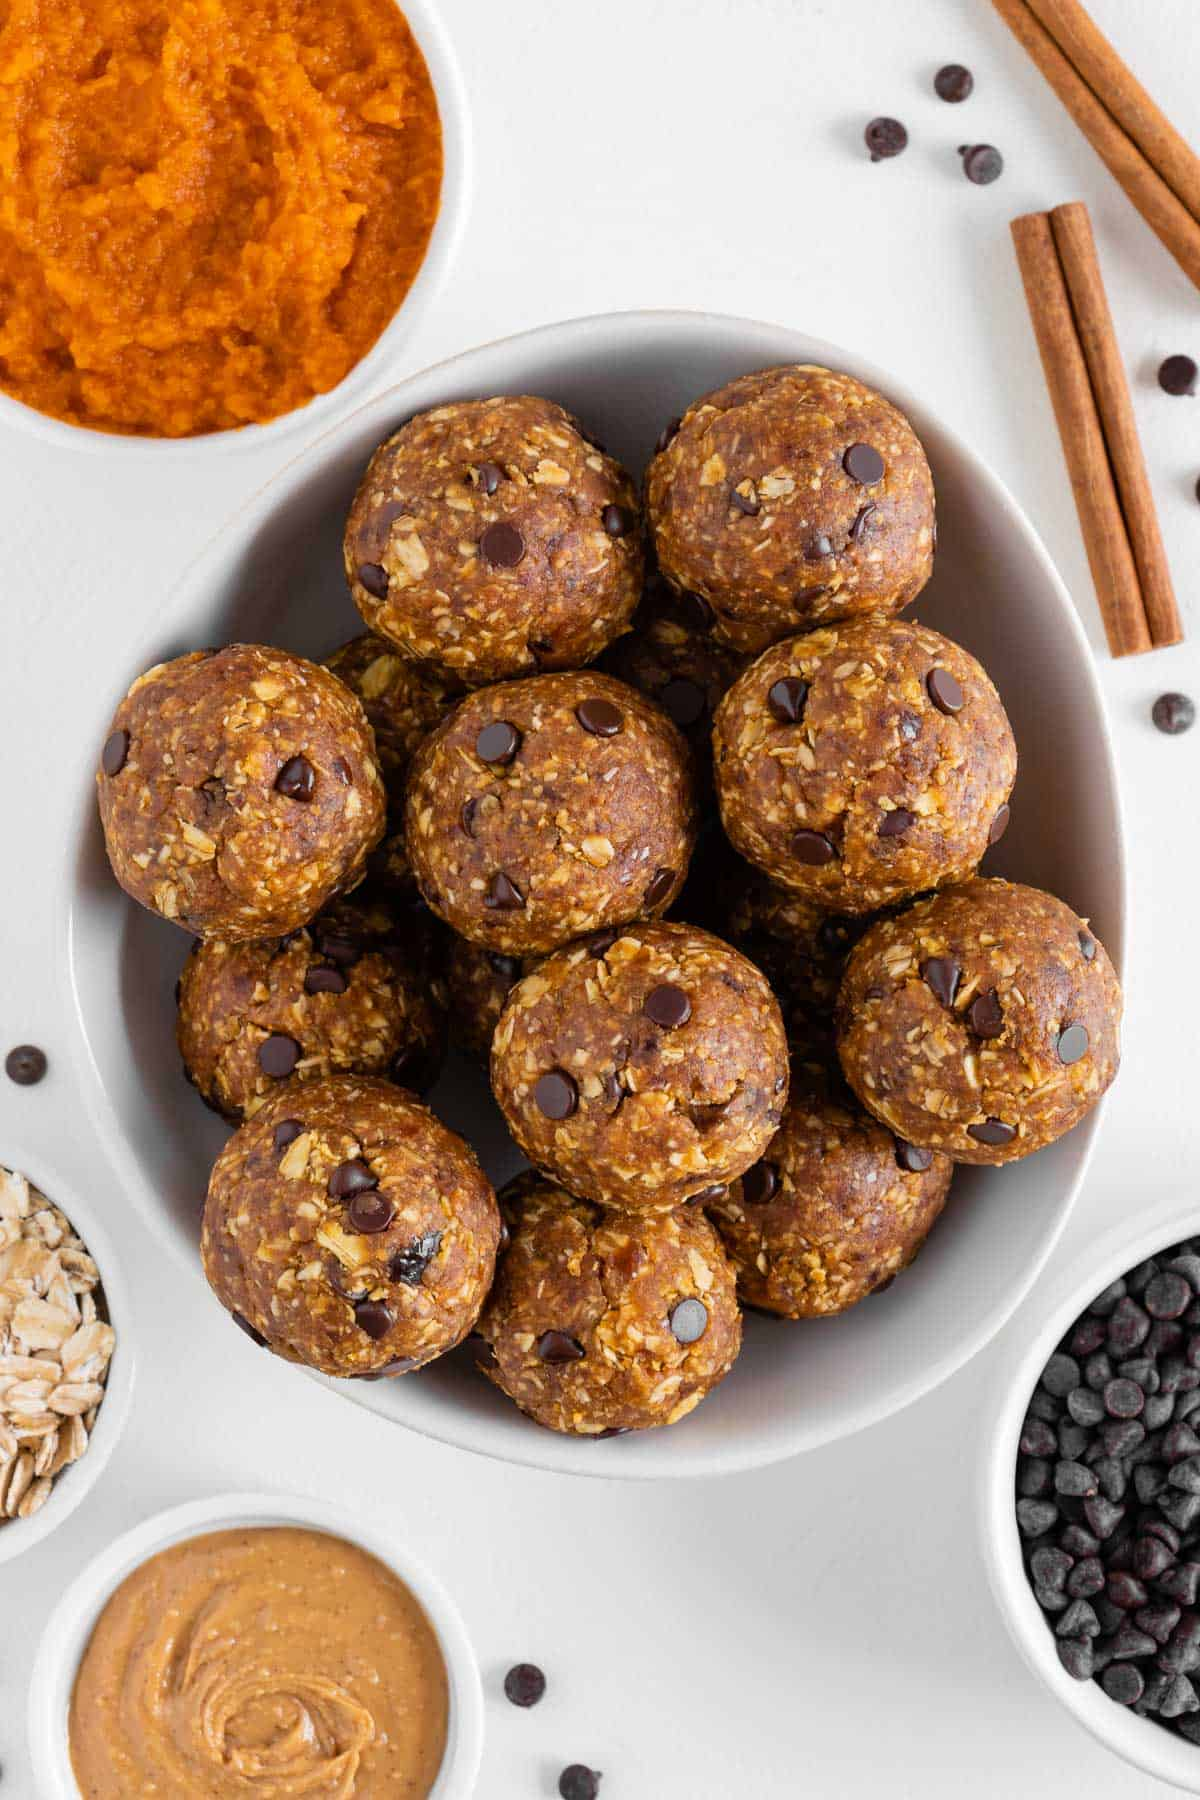 pumpkin energy balls in a white bowl surrounded by pumpkin puree, peanut butter, chocolate chips, and oats